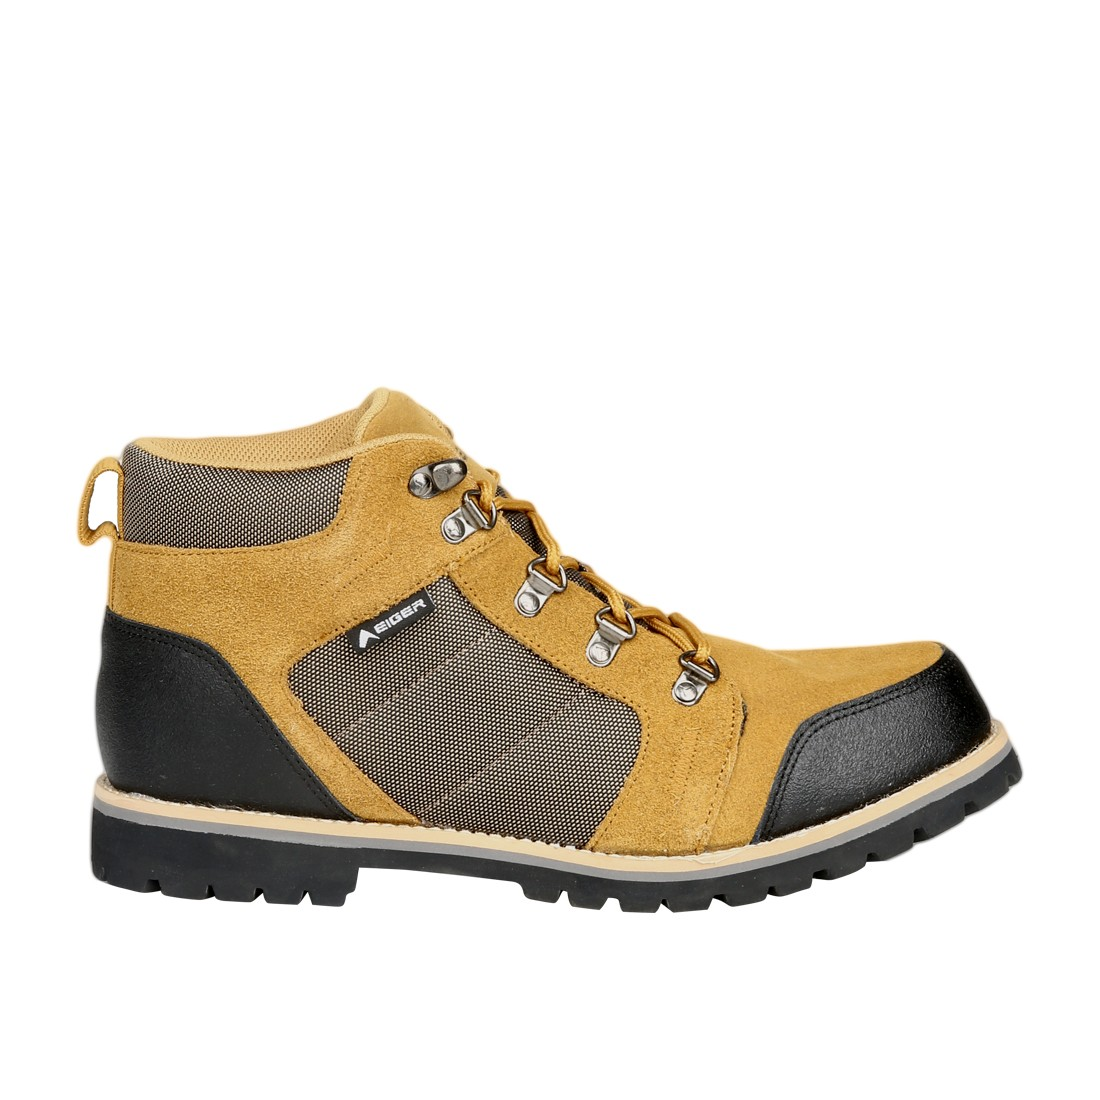 North Face Shoes Width Sizing